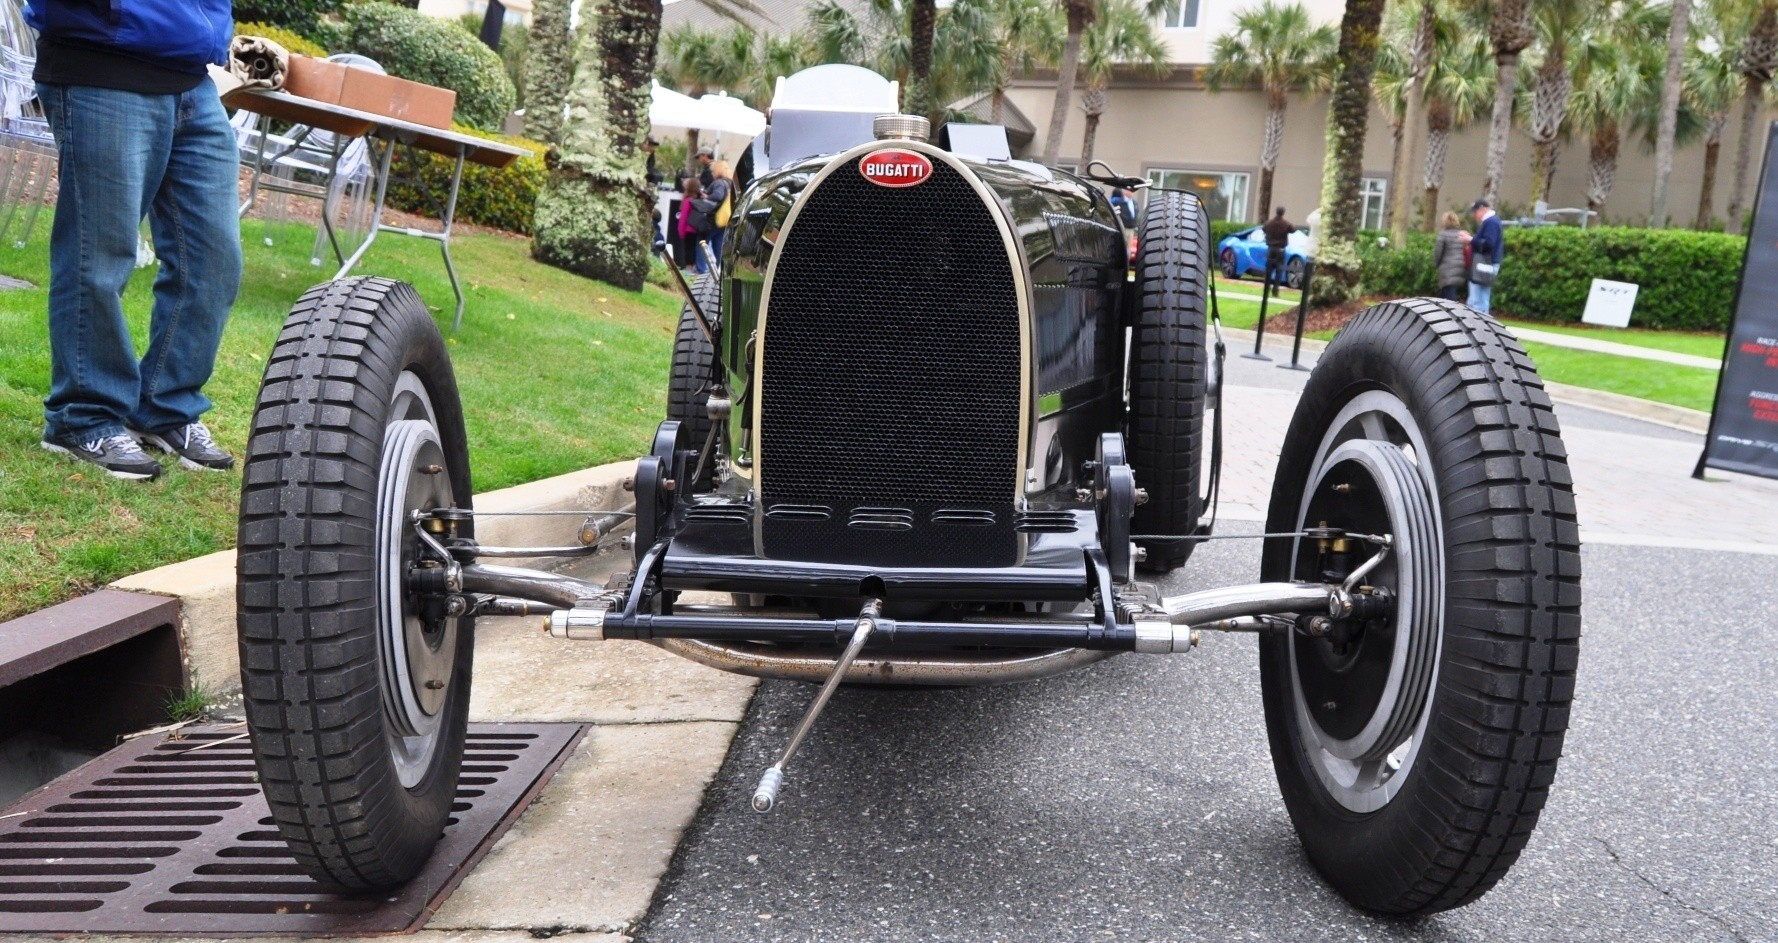 PurSang Argentina Shows Innovative Marketing with Street-Parked 1920s Bugatti GP Car2